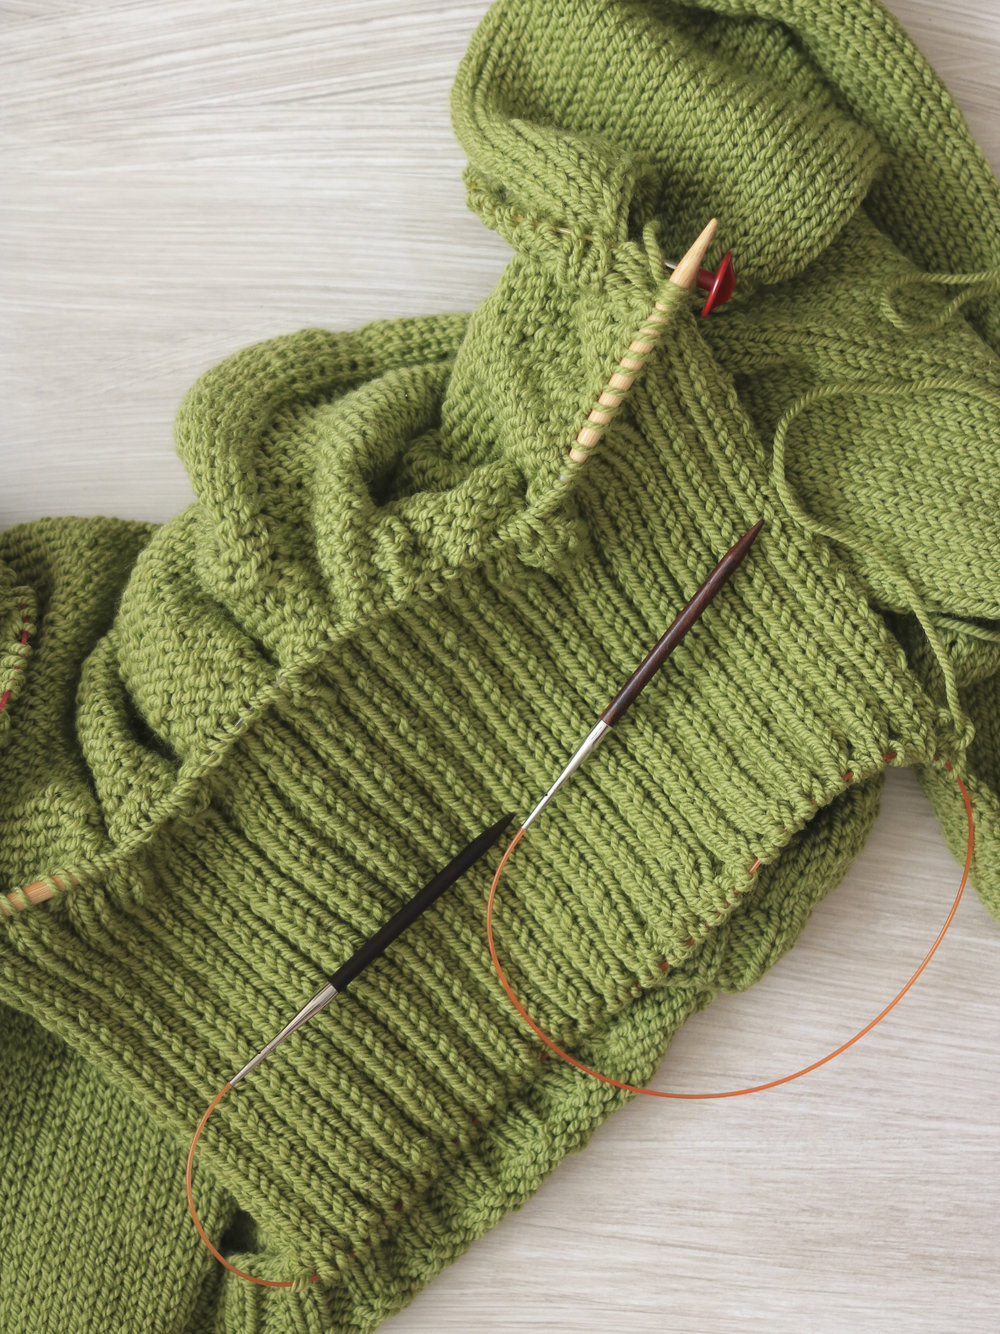 Picking up stitches at the neckline of a Carbeth Cardigan